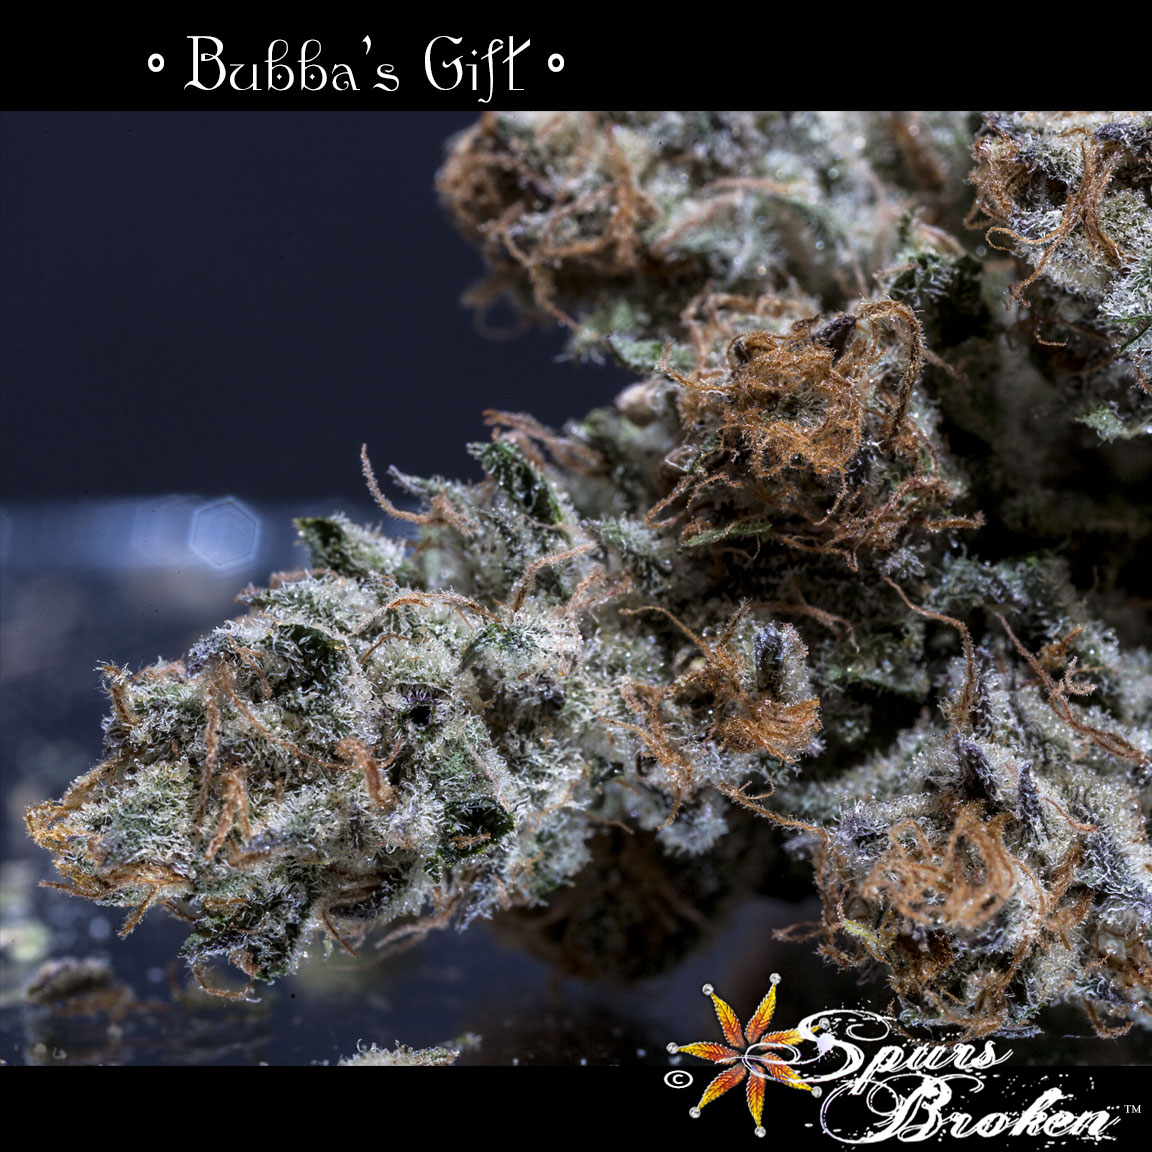 Bubba's Gift - Cannabis Macro Photography by Spurs Broken (Robert R. Sanders)